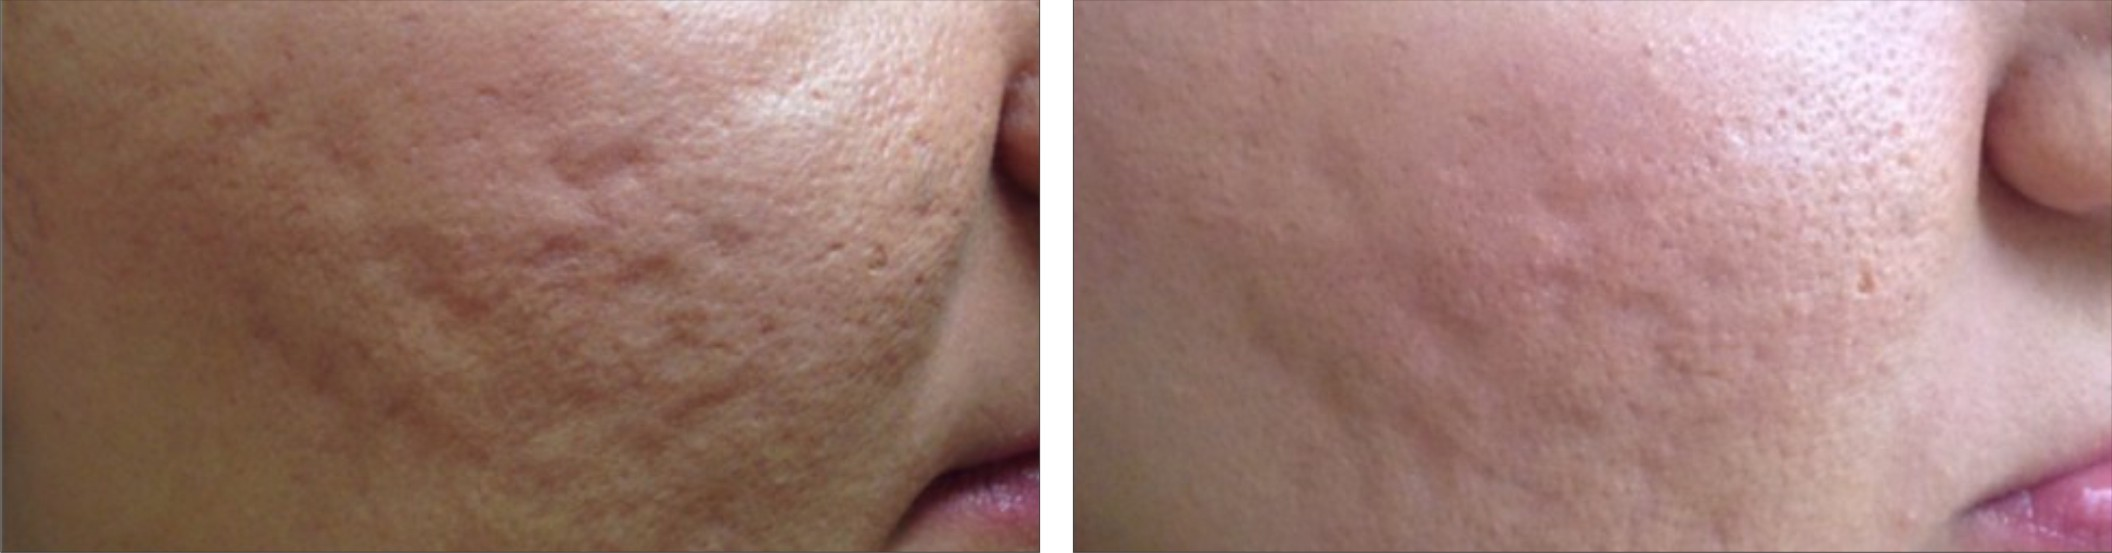 Collagen Induction Therapy Image One